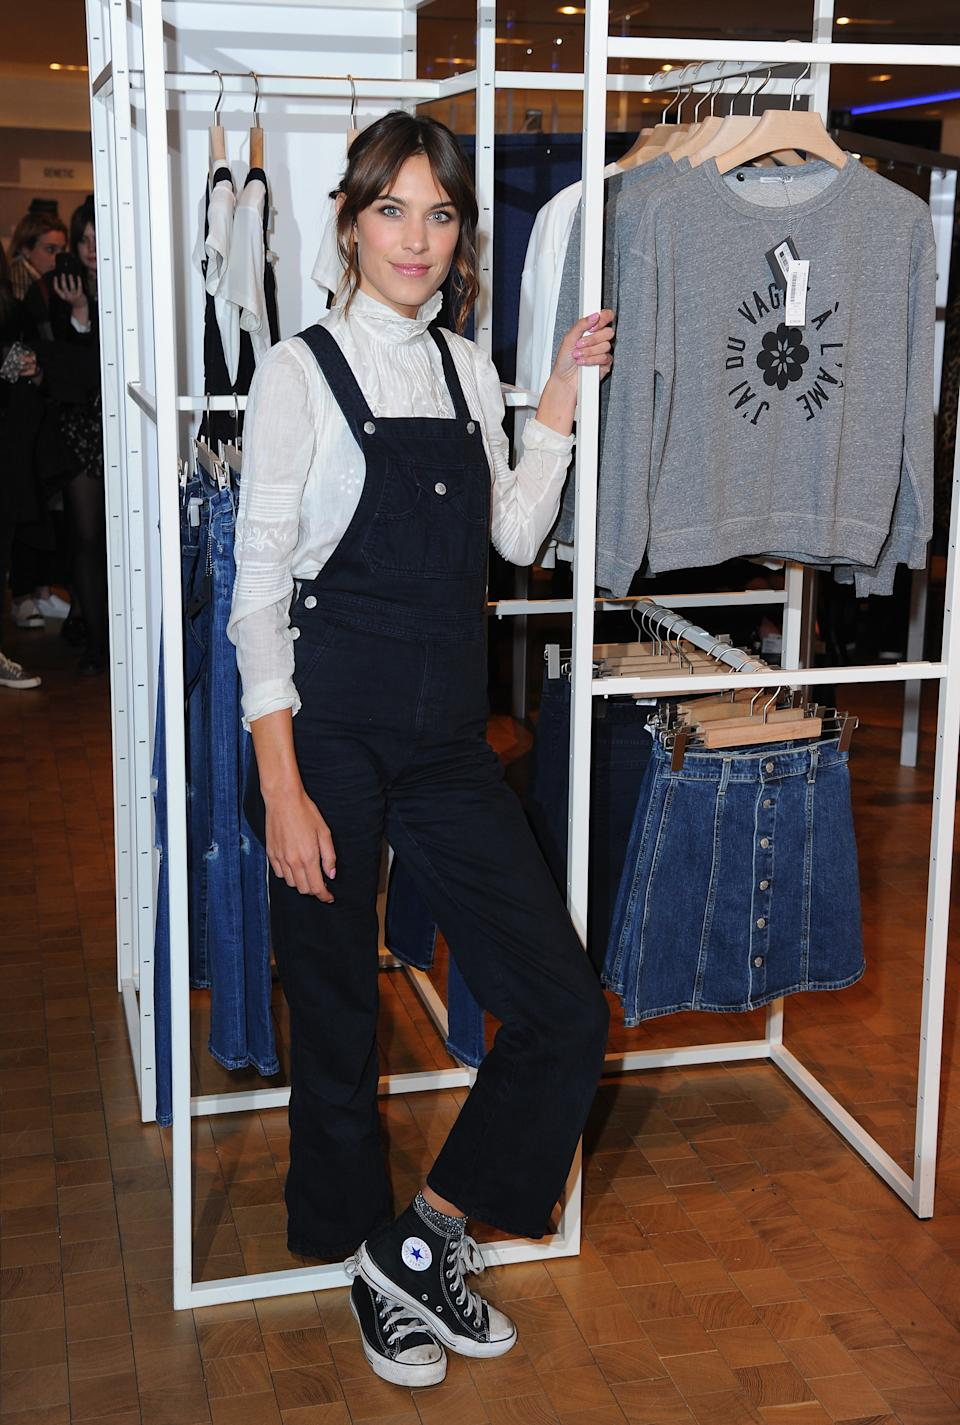 LONDON, ENGLAND - JANUARY 15:  Alexa Chung launches her new jeans collection 'Alexa Chung x AG' at Selfridges on January 15, 2015 in London, England.  (Photo by Eamonn McCormack/WireImage)